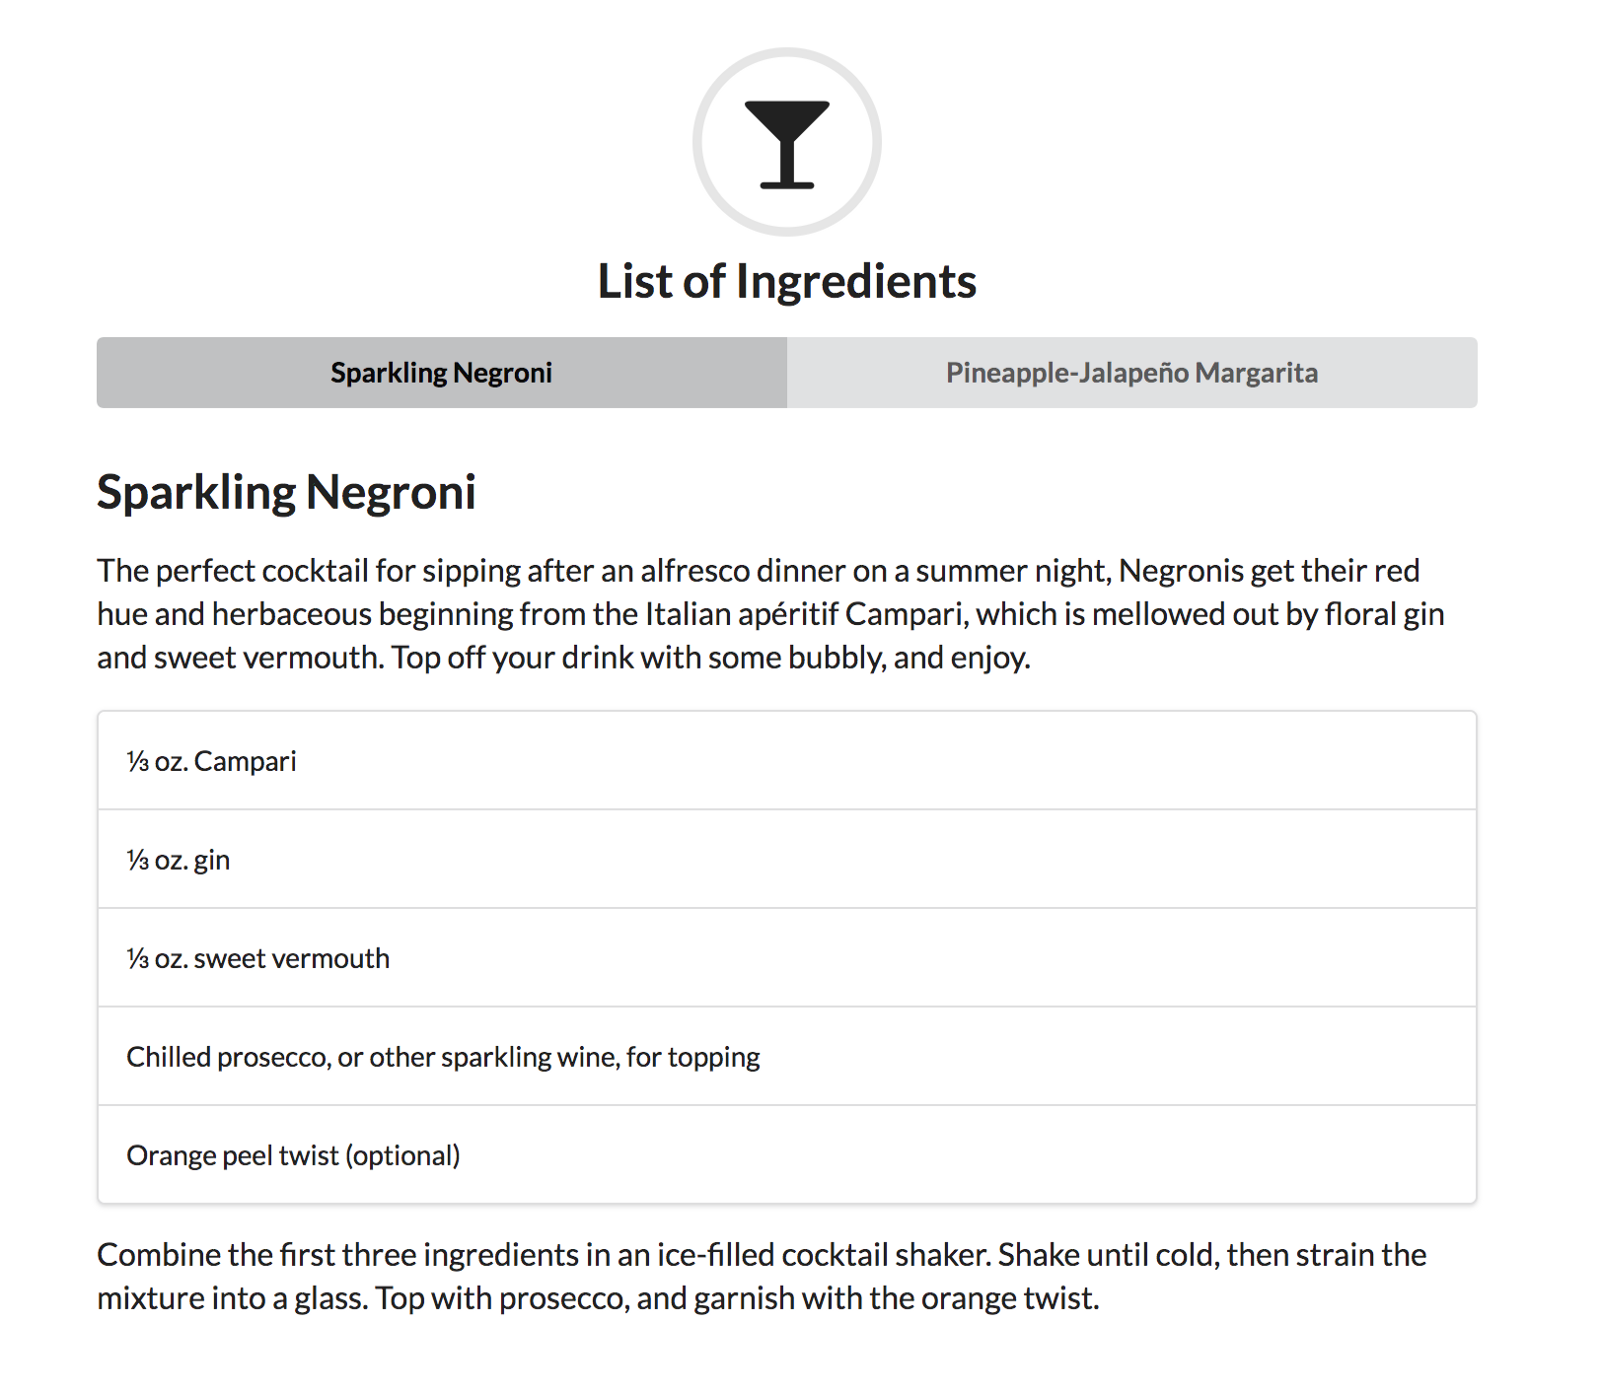 An example of the List of Ingredients app